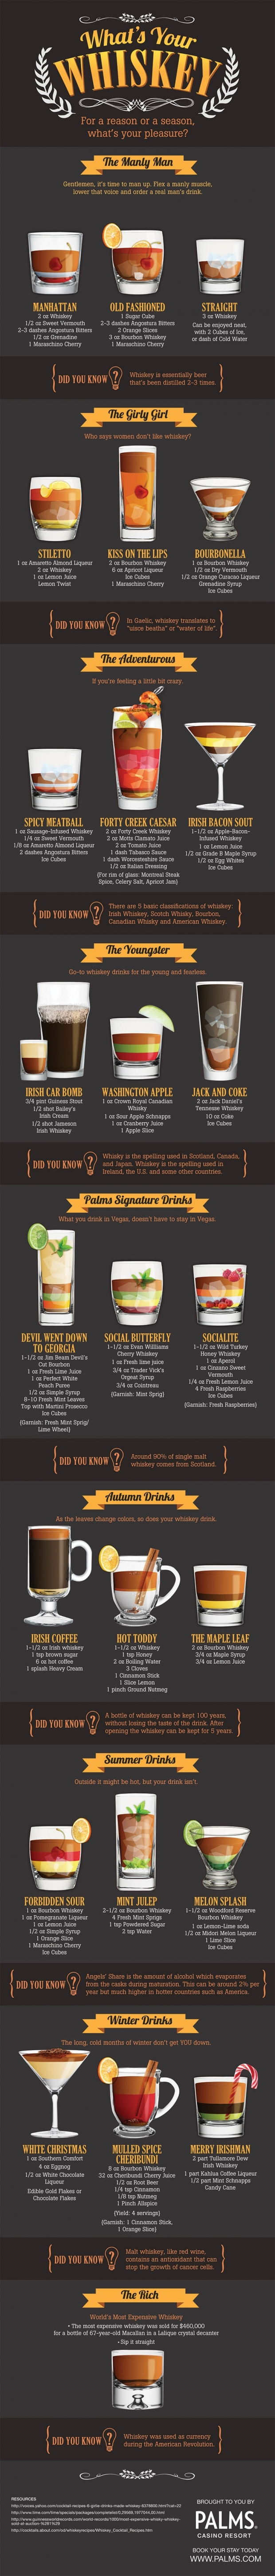 xPalms_Whats_Your_Whiskey_Infographic.jpg.pagespeed.ic_.t8wrQo8gc9